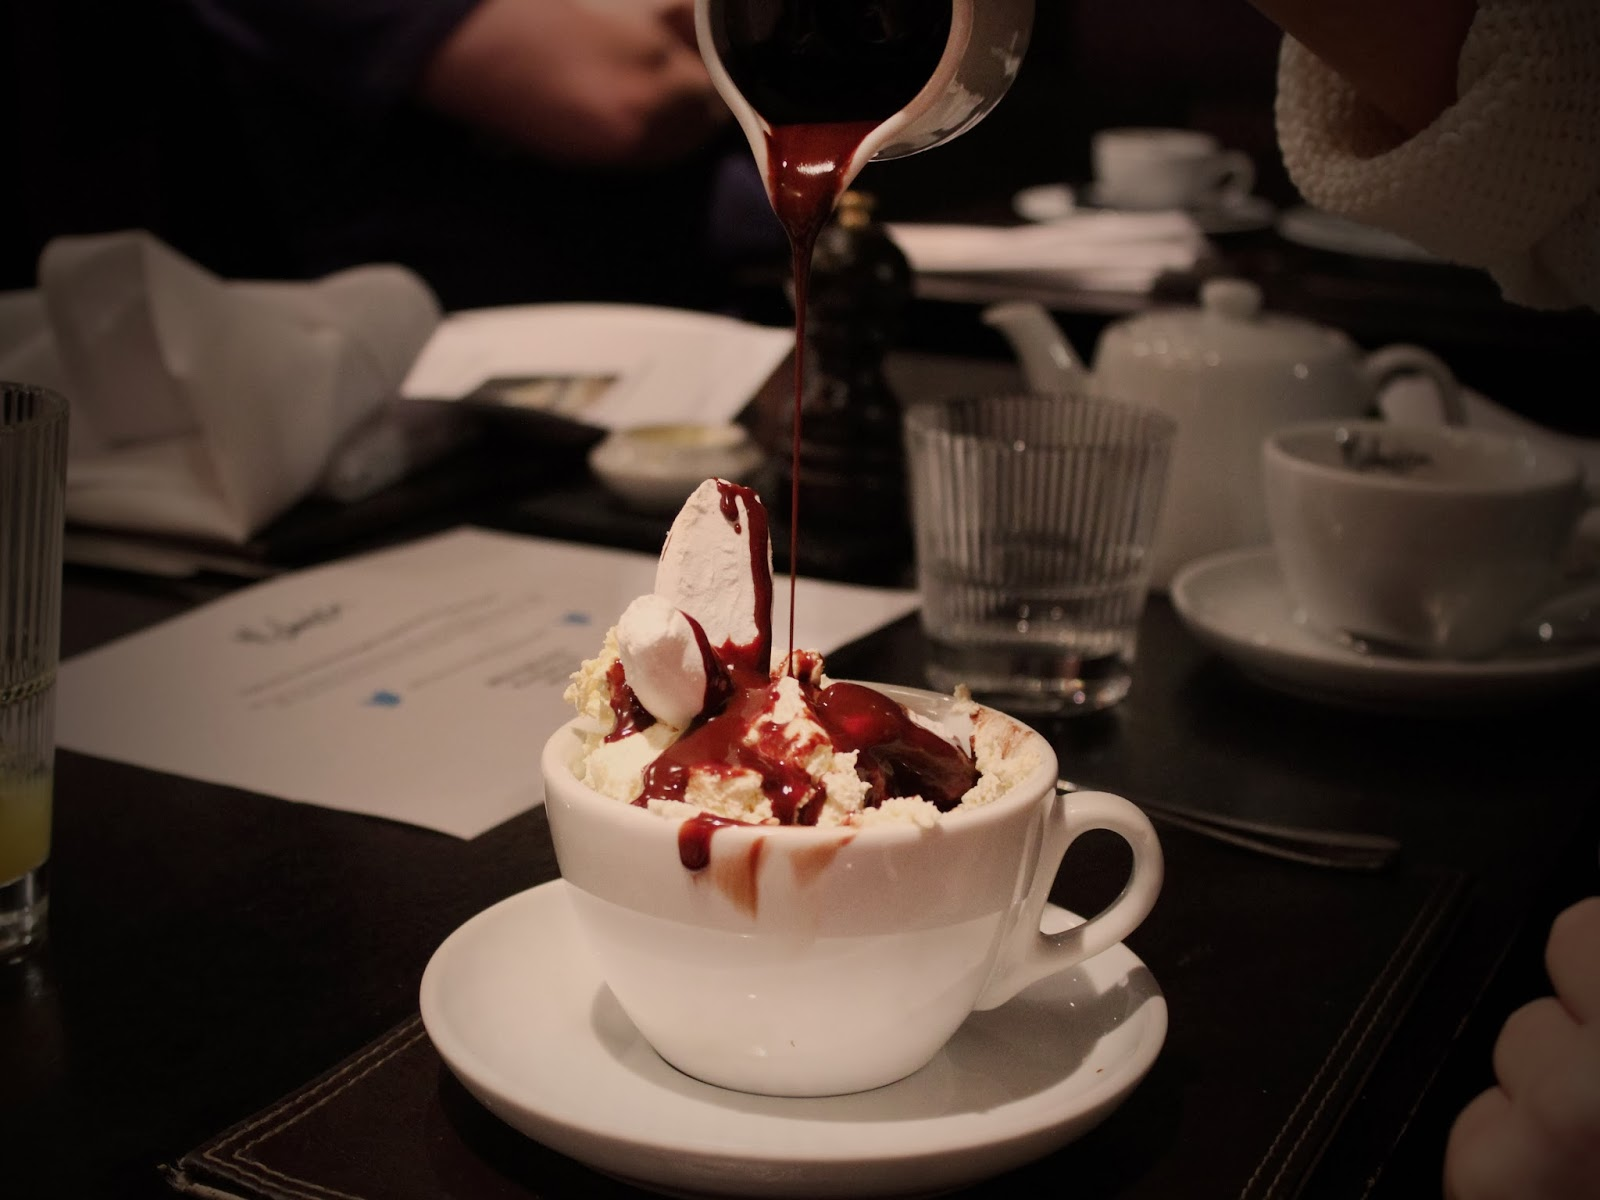 Hot Chocolate Dessert at the Malmaison Hotel in Birmingham